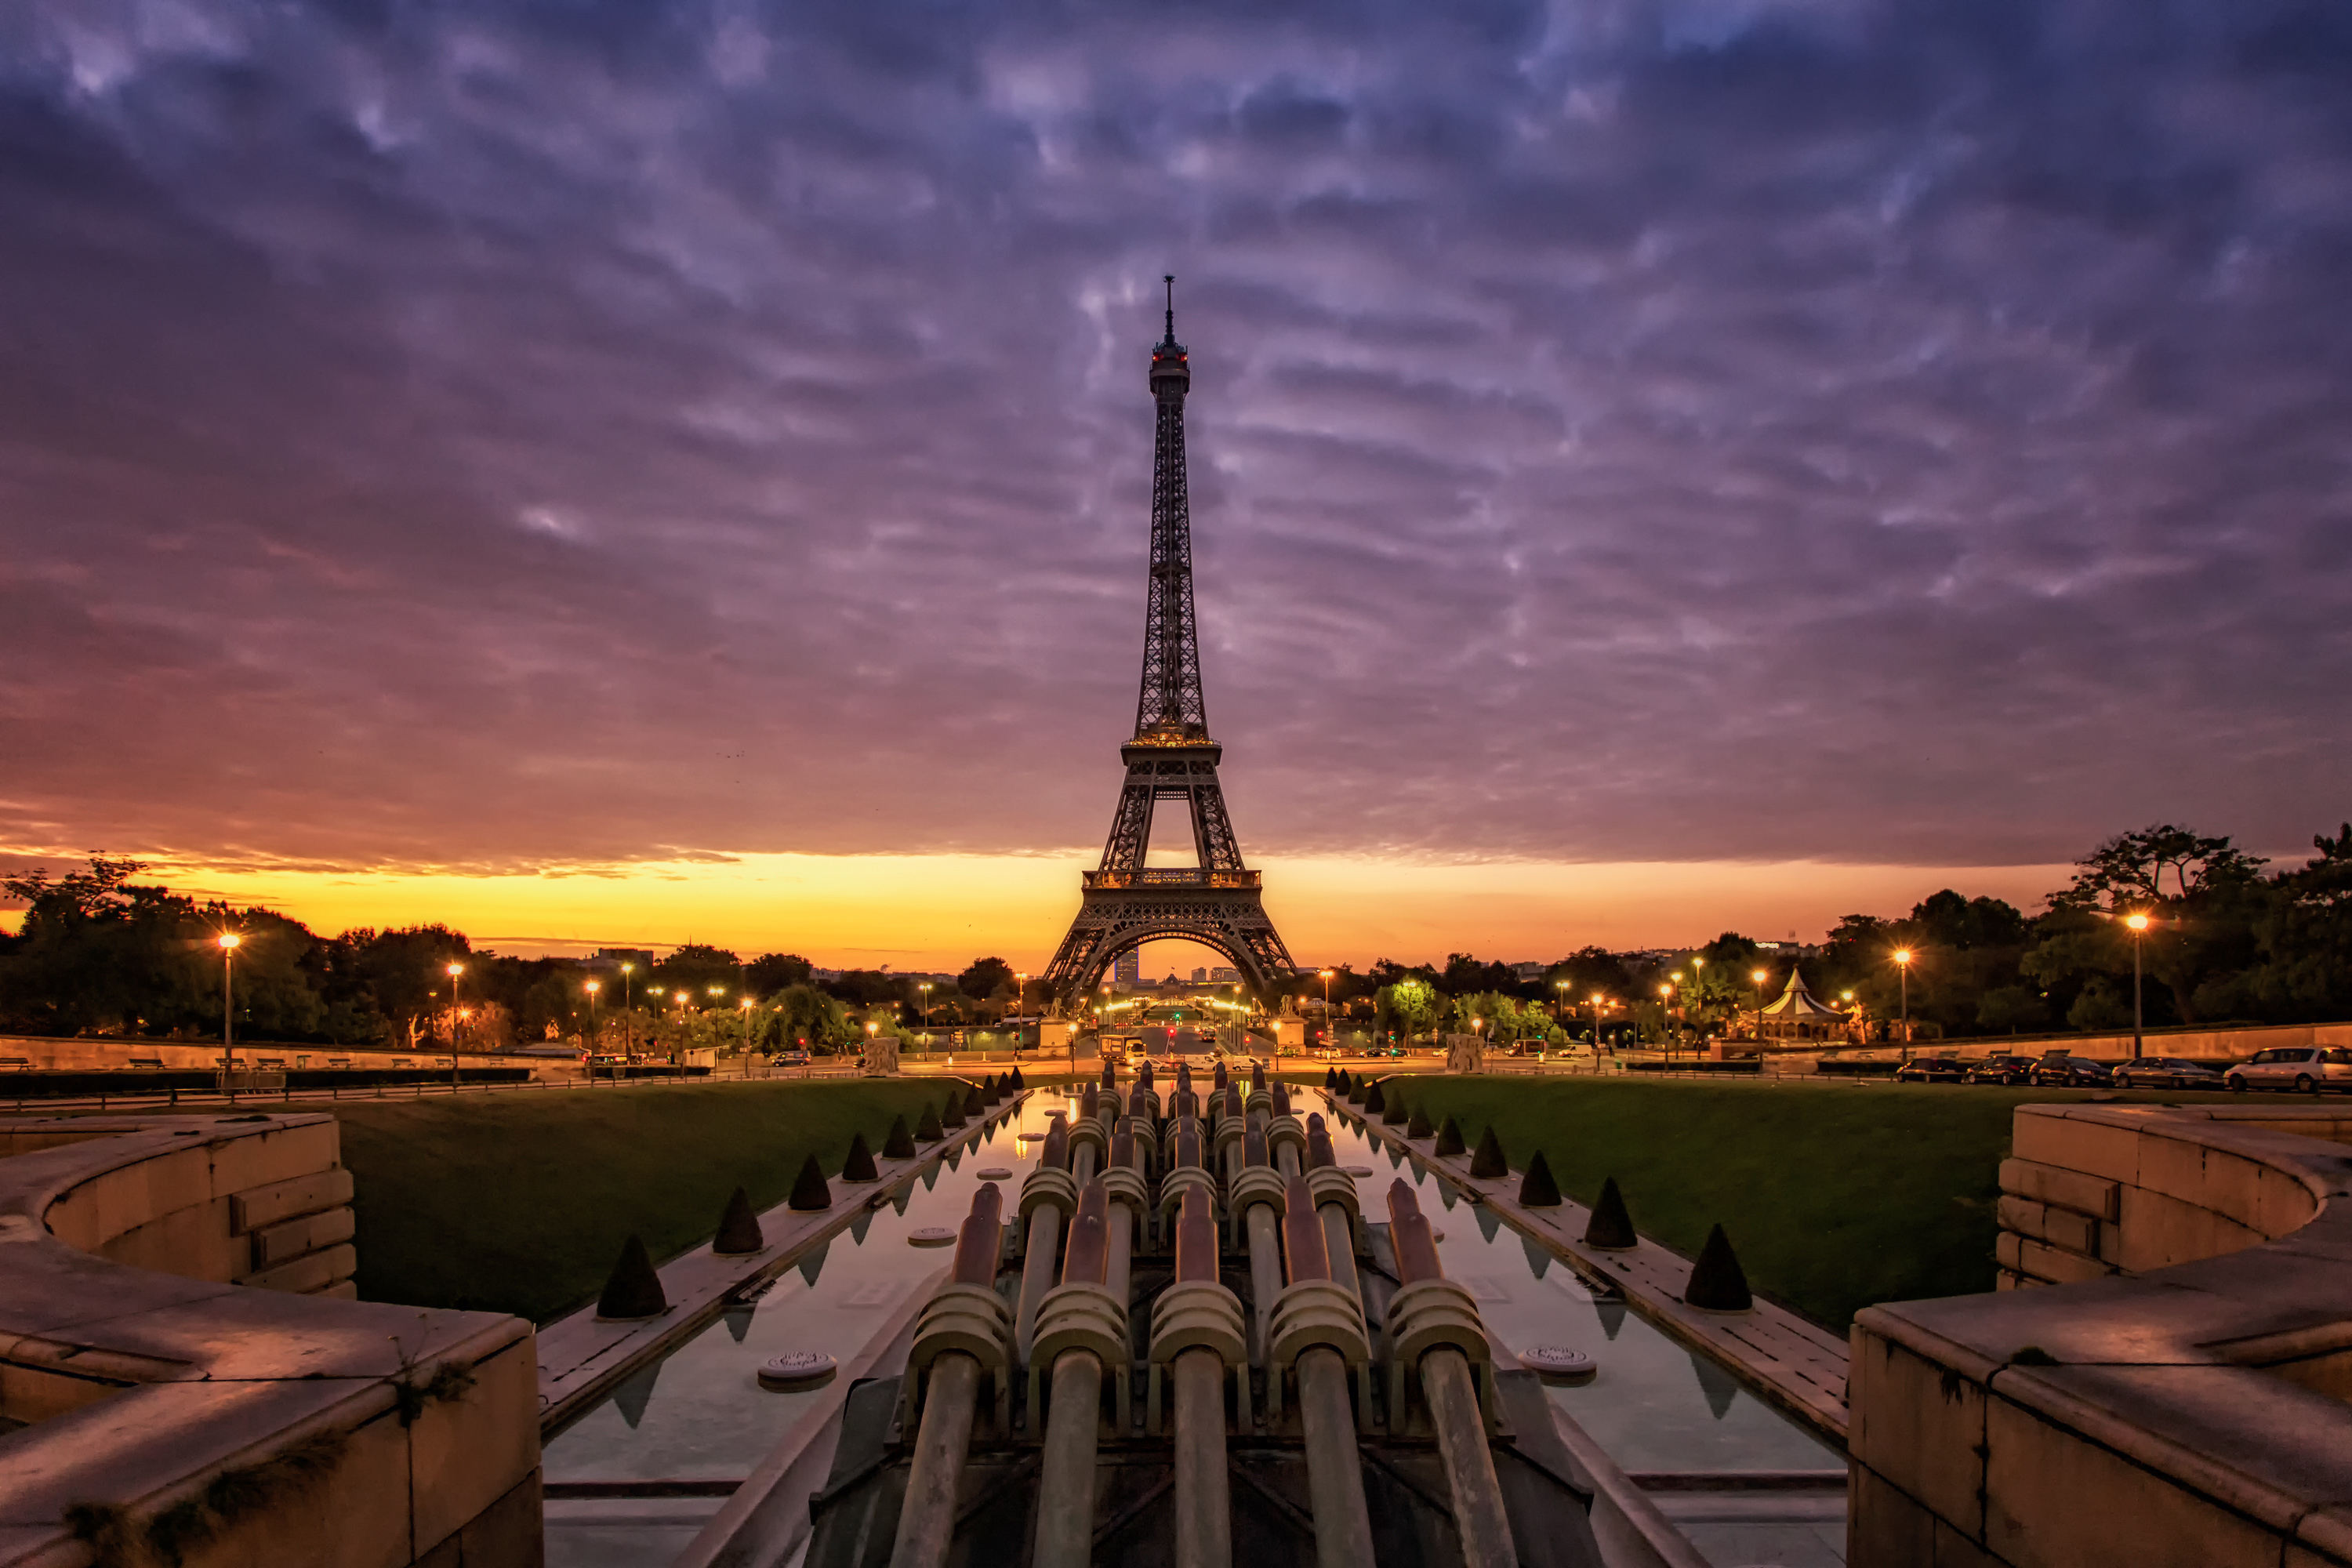 Eiffel Tower Hd Images 04547: Paris, France Attractions - Lonely Planet